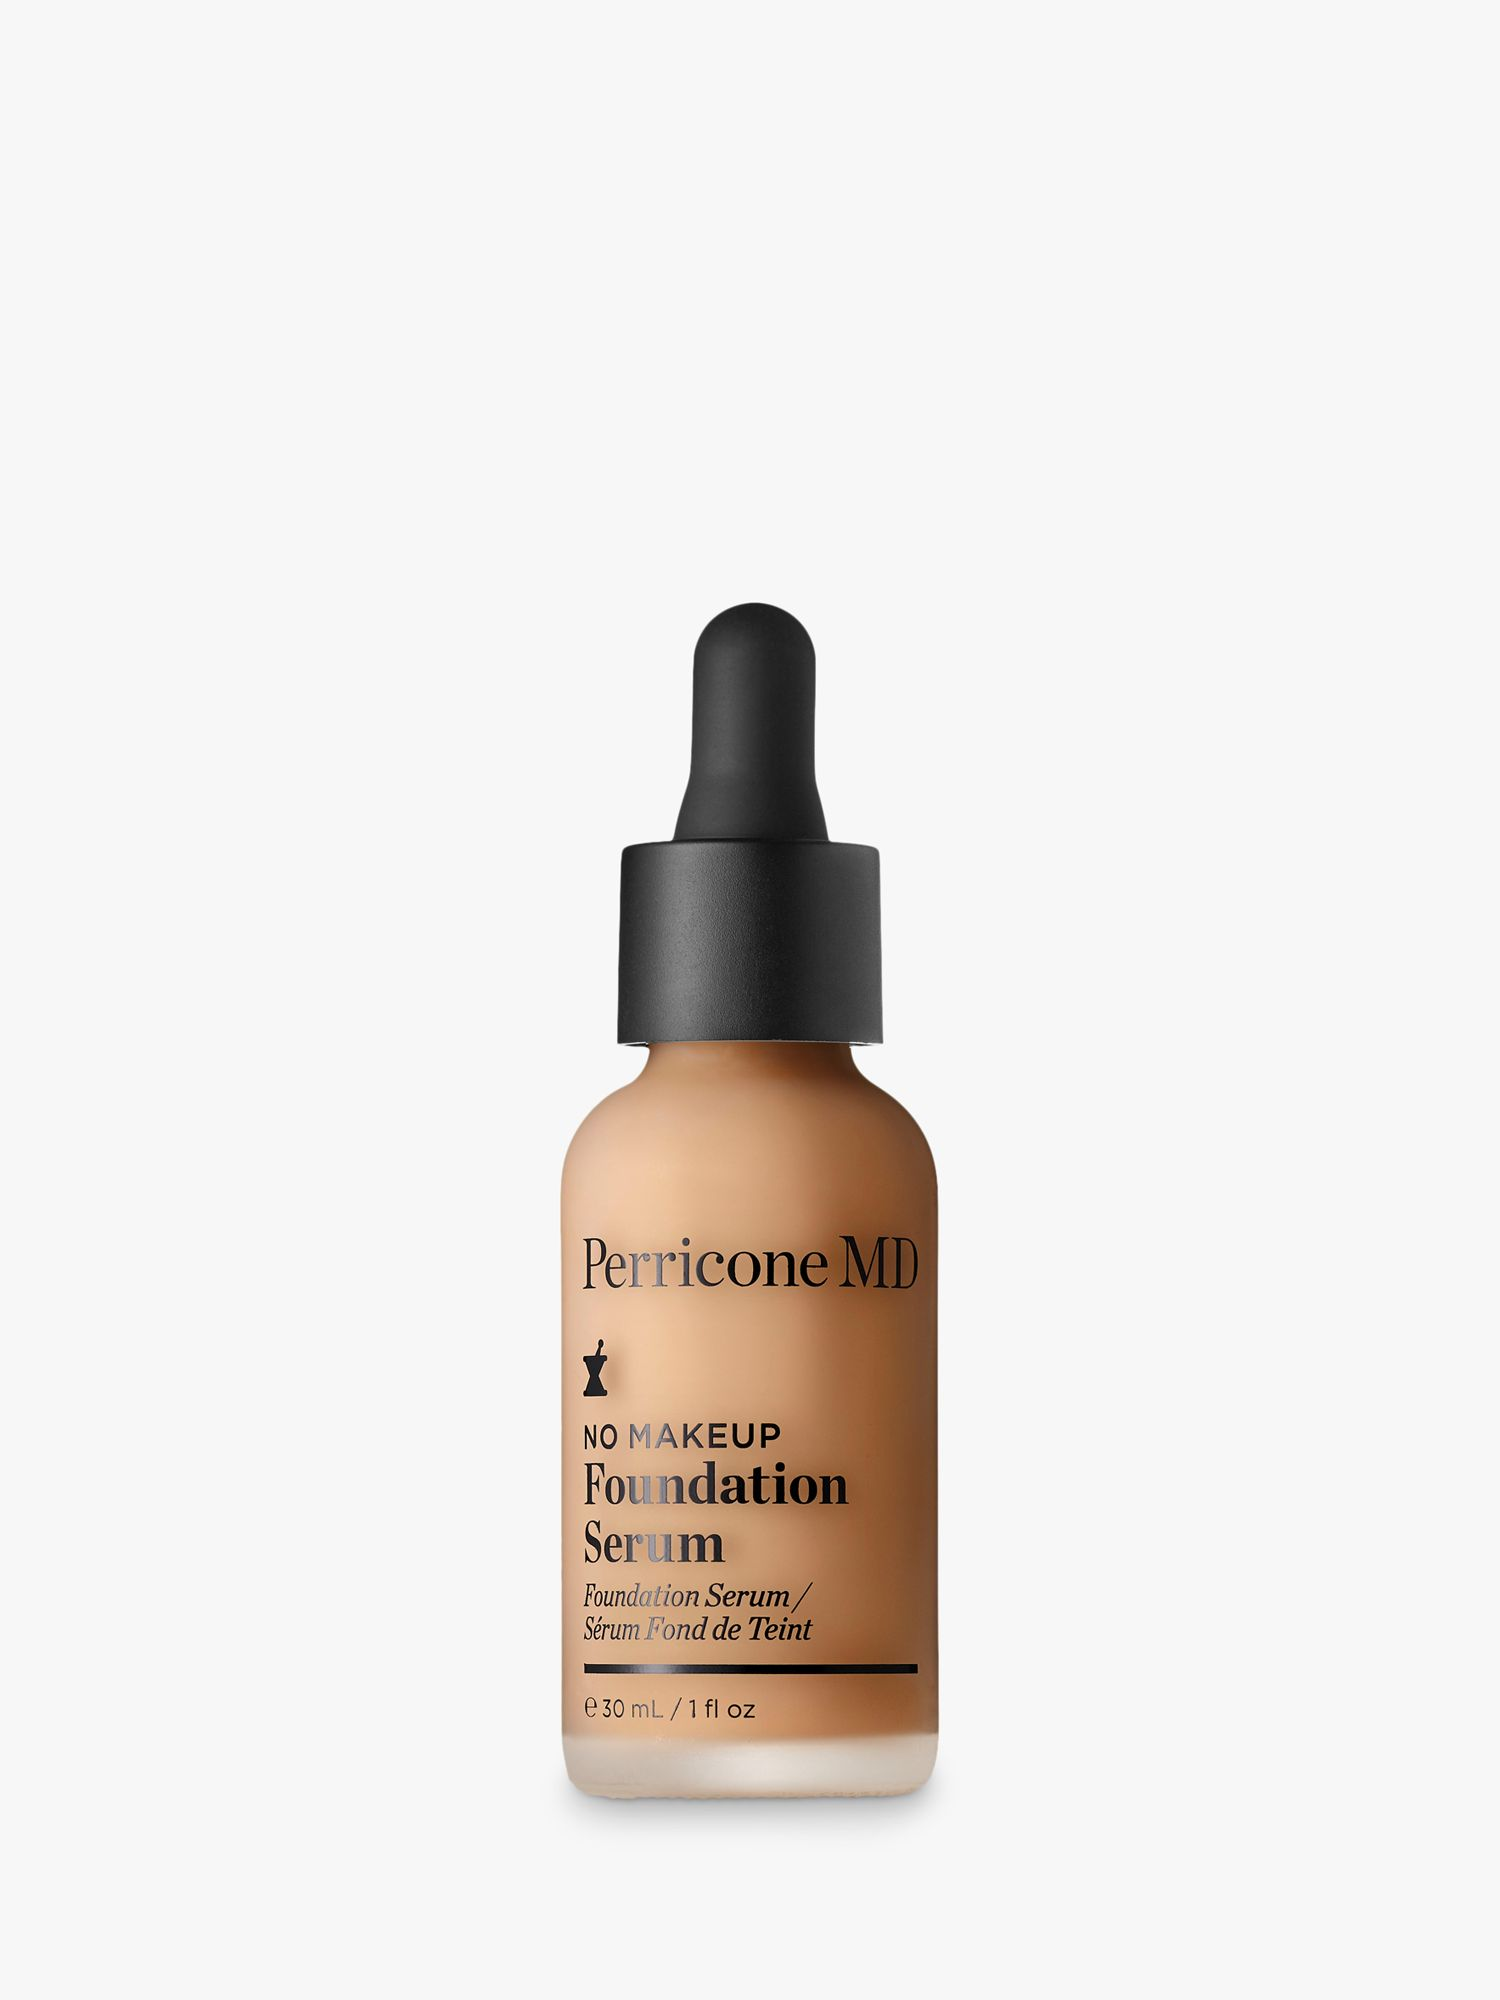 Perricone MD Perricone MD No Makeup Foundation Serum Broad Spectrum SPF20